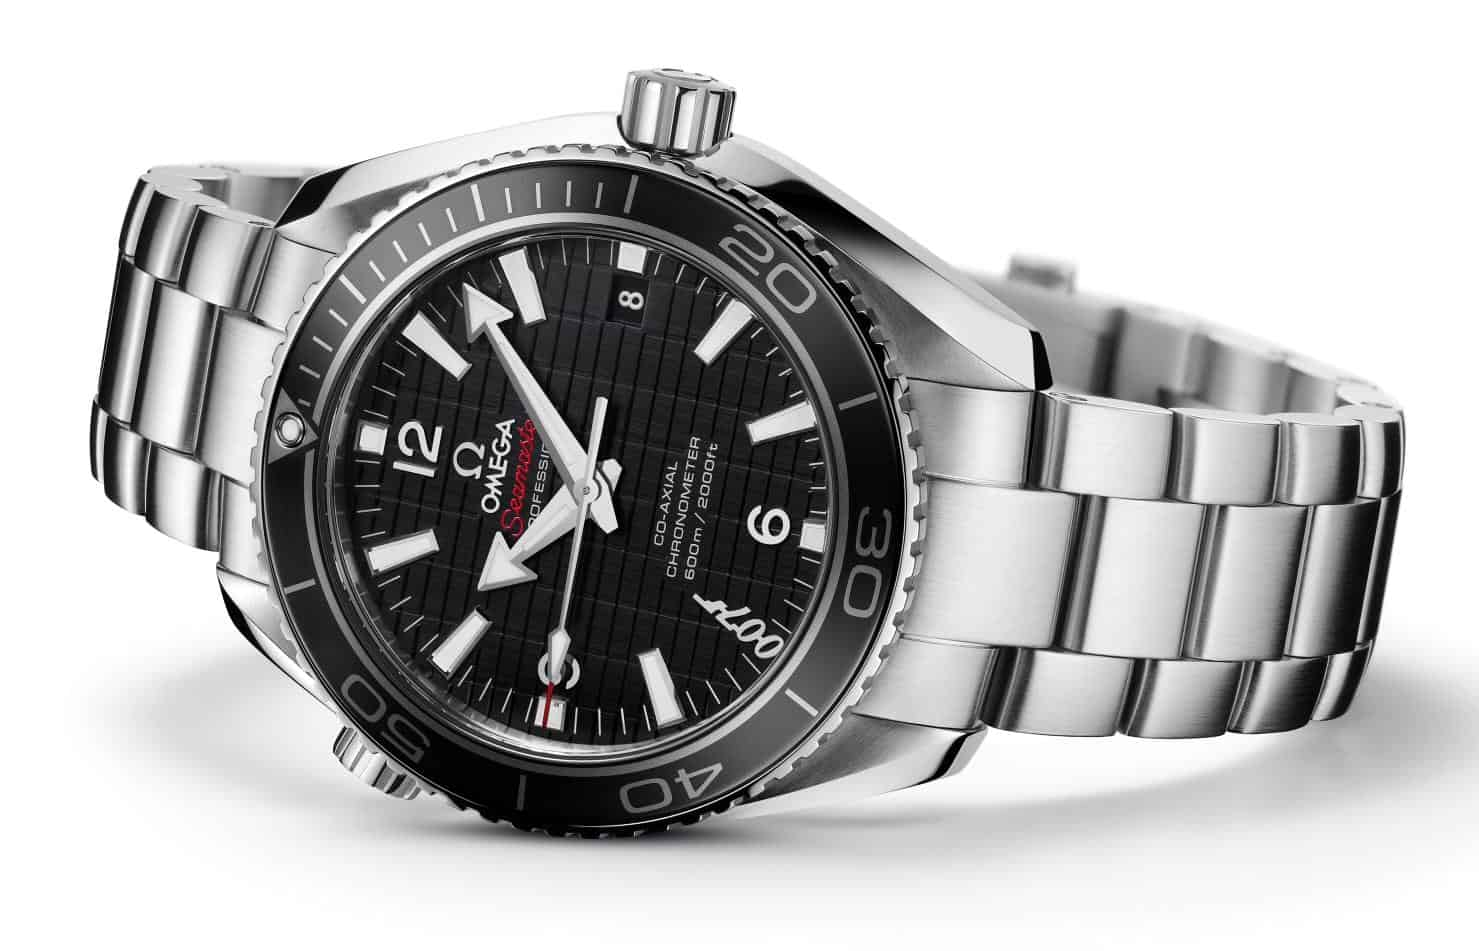 Omega Seamaster Planet Ocean 600M Skyfall Watch Thumbnail